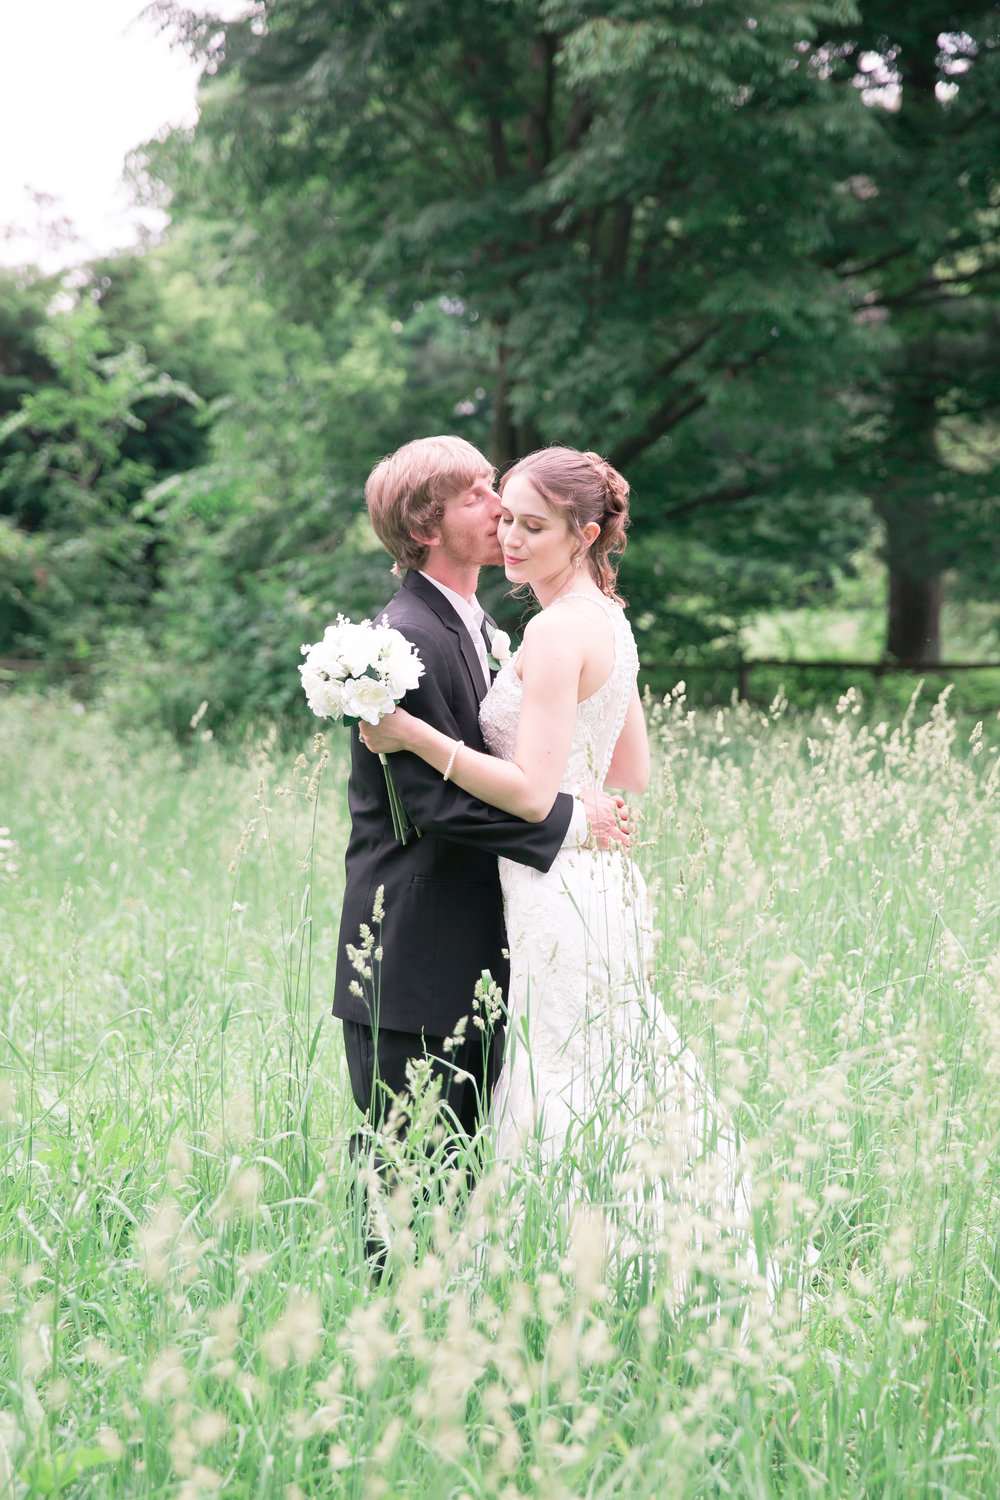 Could a picture get any sweeter?  I love that my couples are ok going into some high grass or funky spots for some amazing pics!